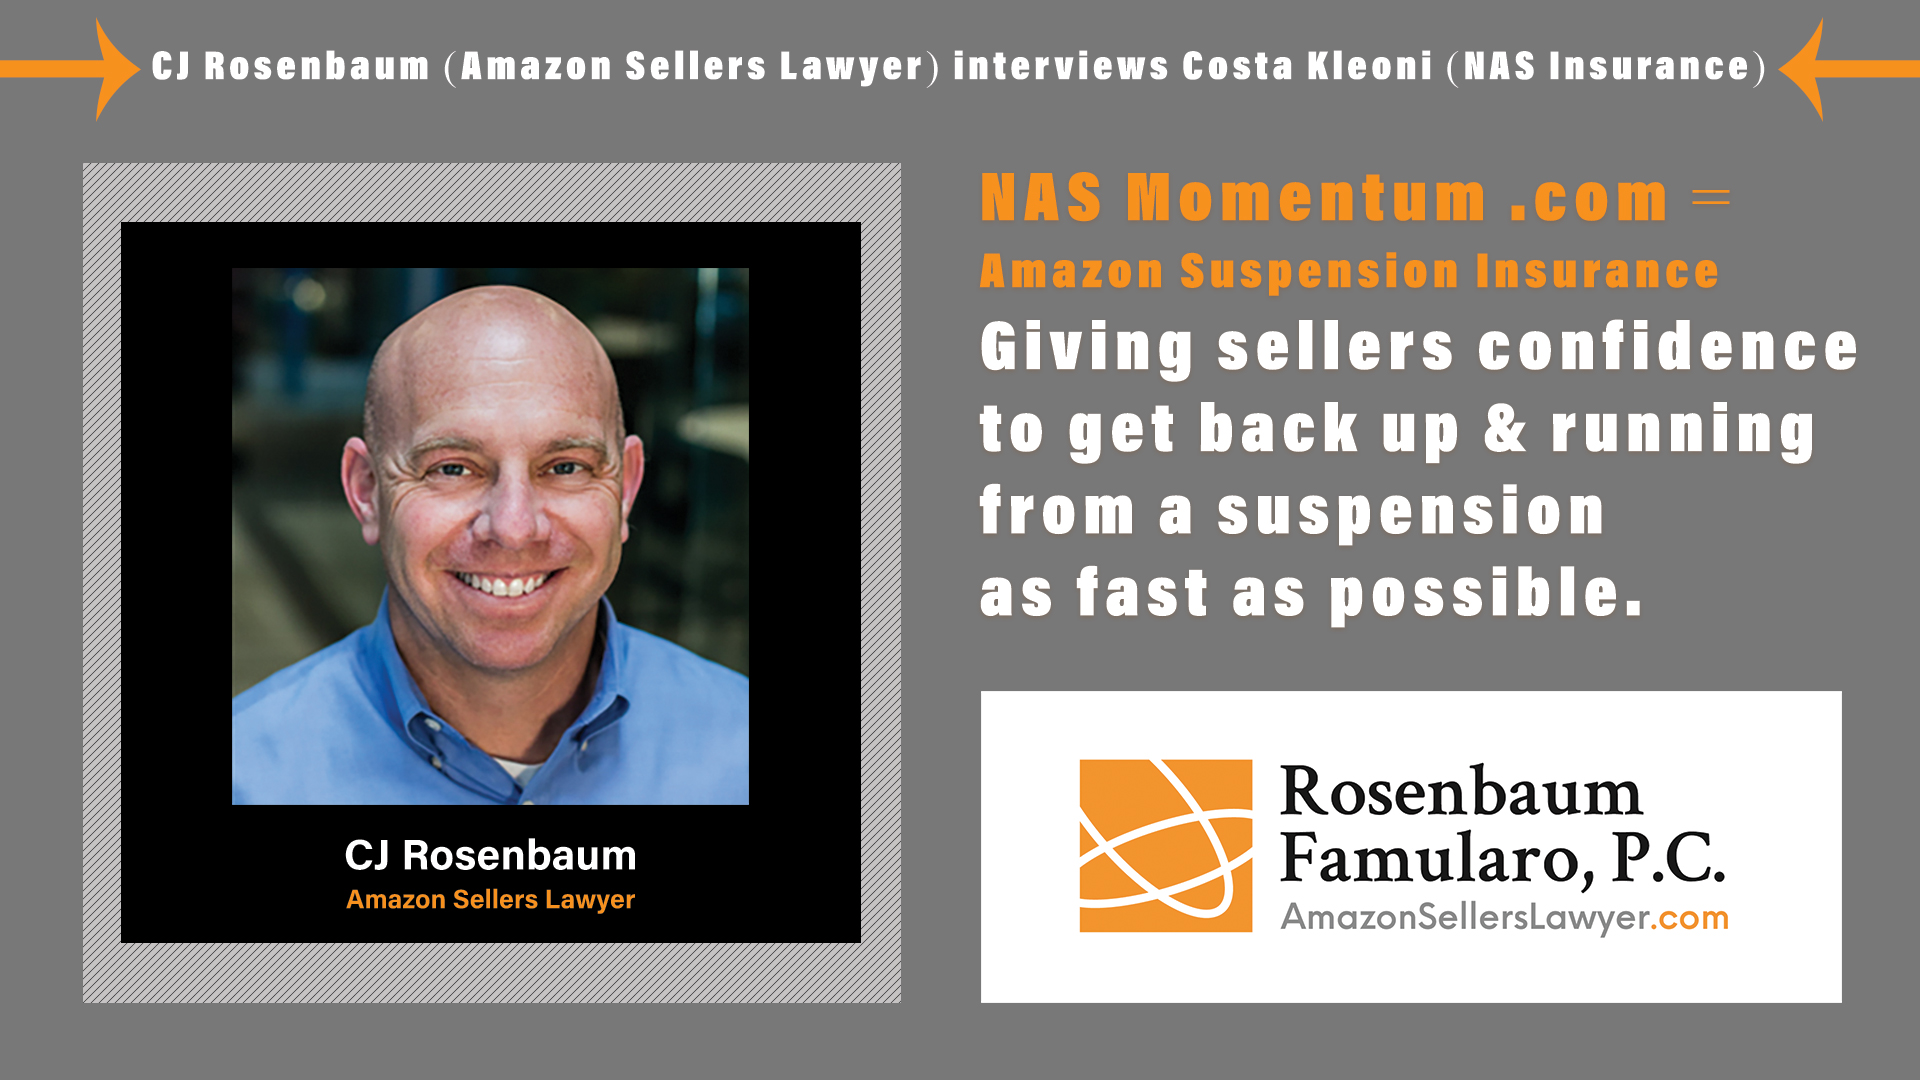 CJ Rosenbaum of Amazon Sellers Lawyer interviews Costa Kleoni of NAS Insurance